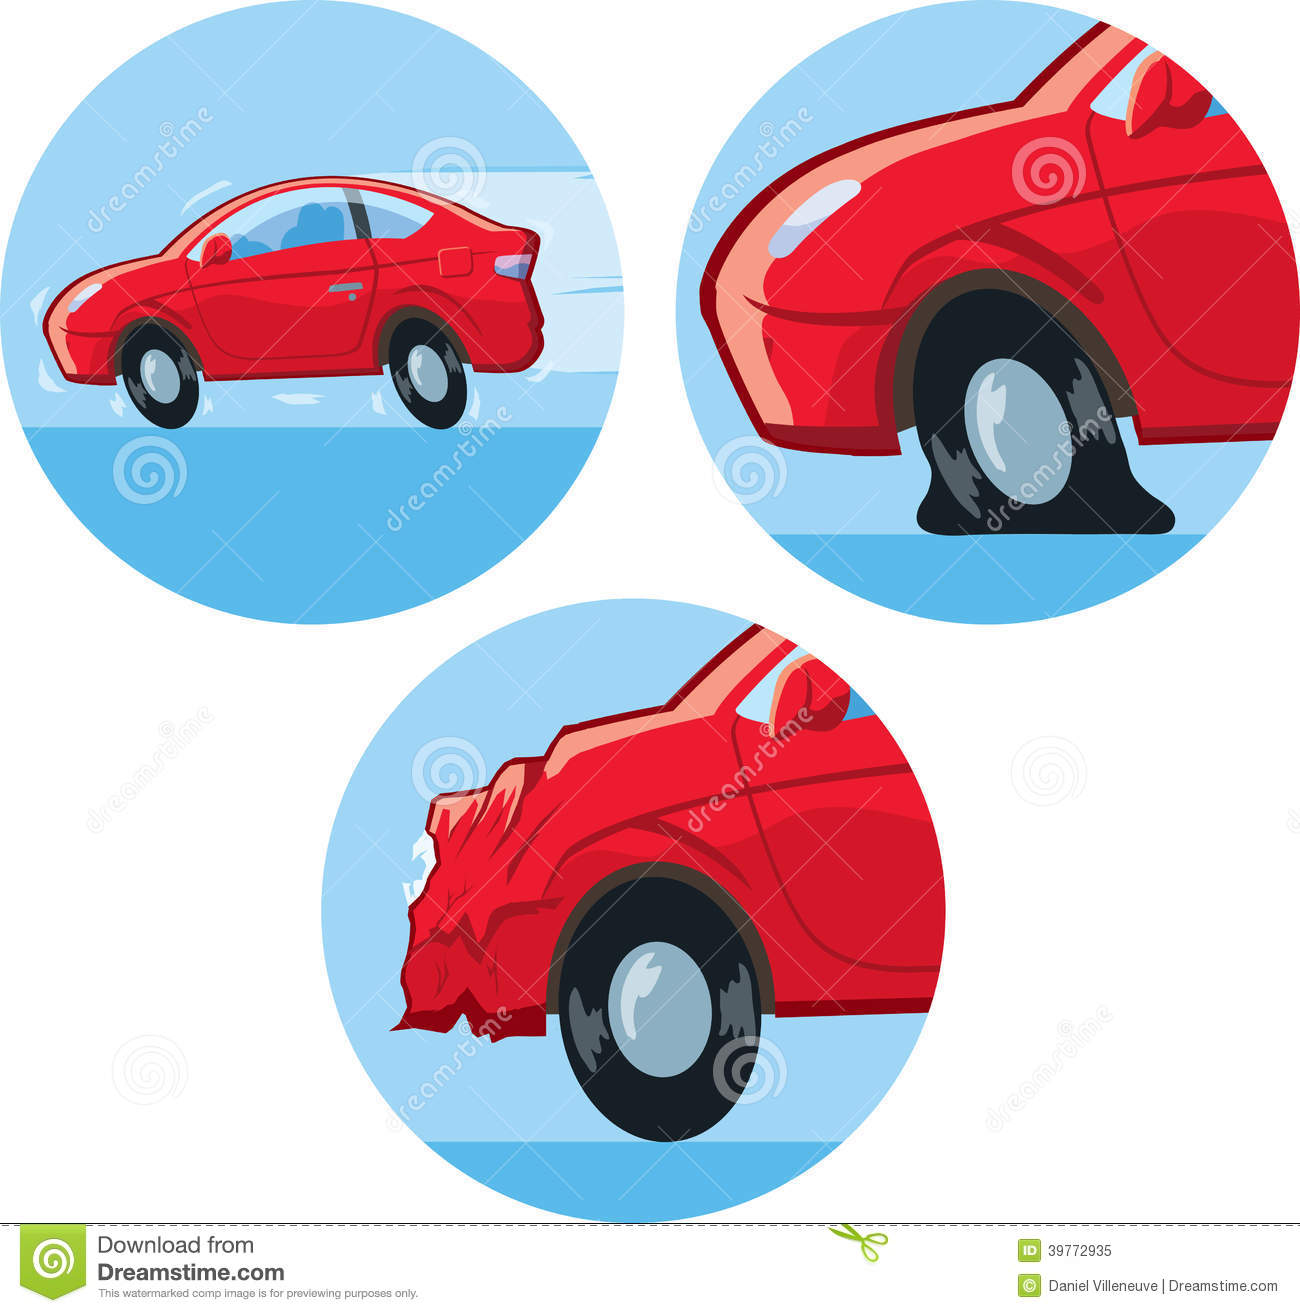 Car Accident Icon Stock Vector Illustration Of Tires 39772935